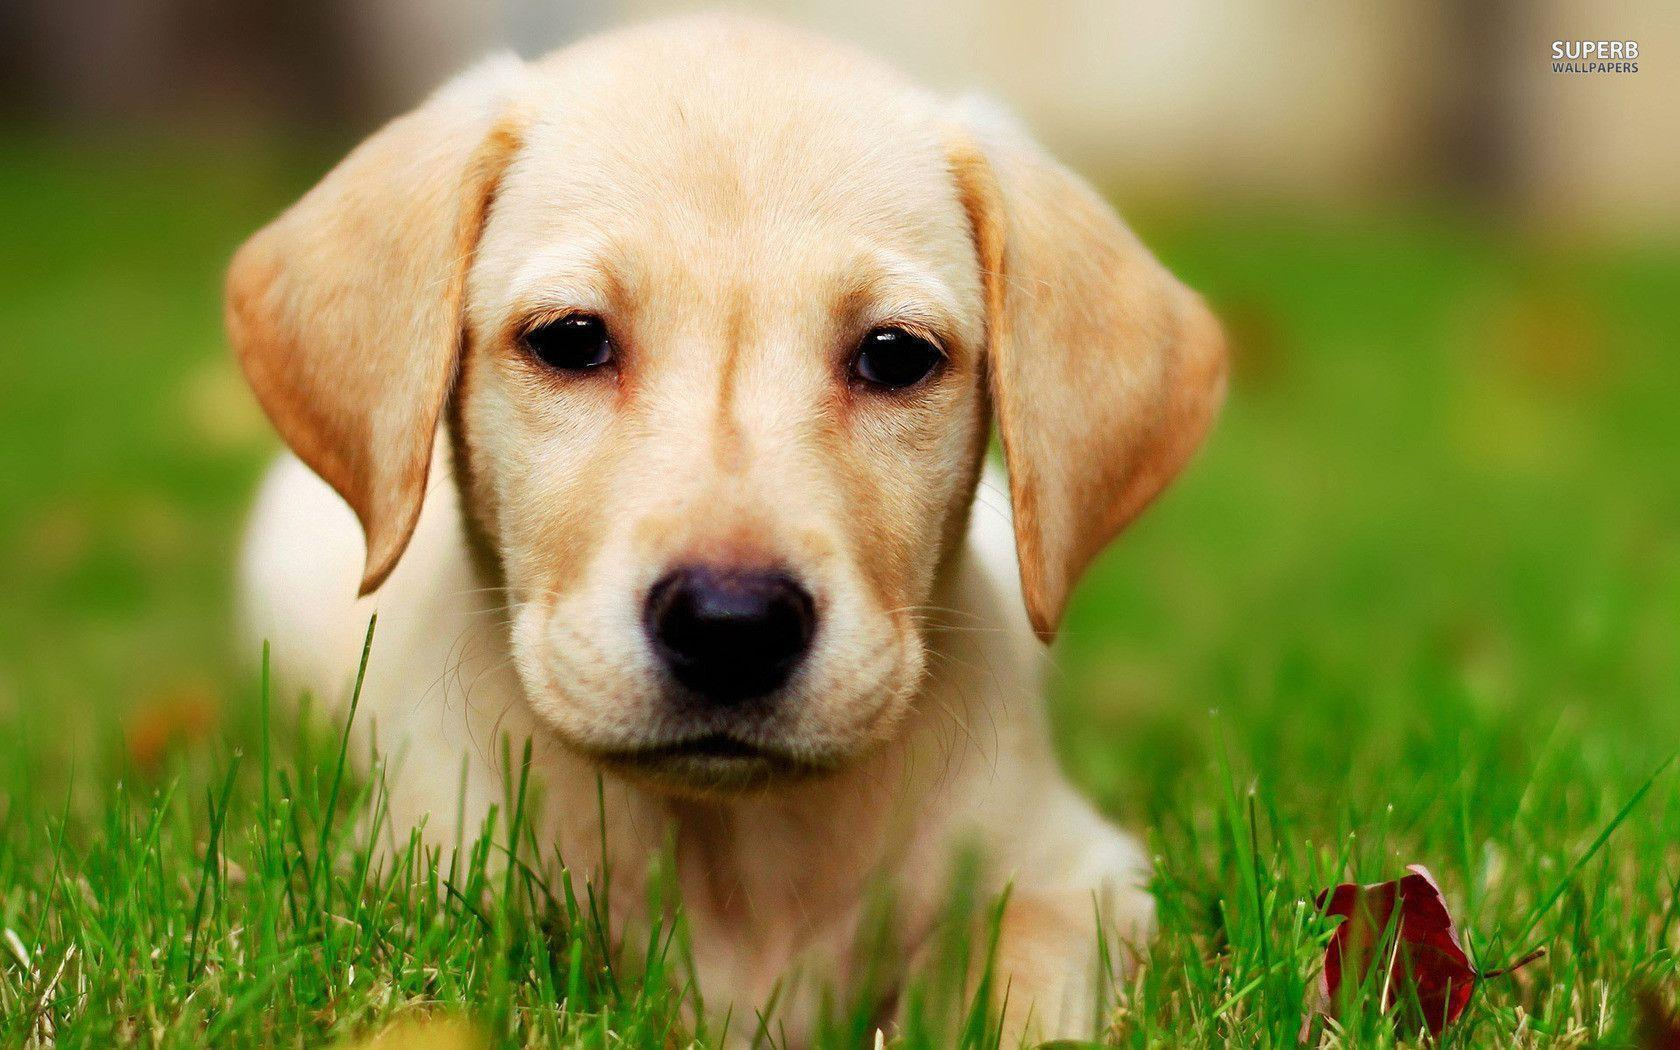 Labrador puppy wallpaper - Animal wallpapers - #